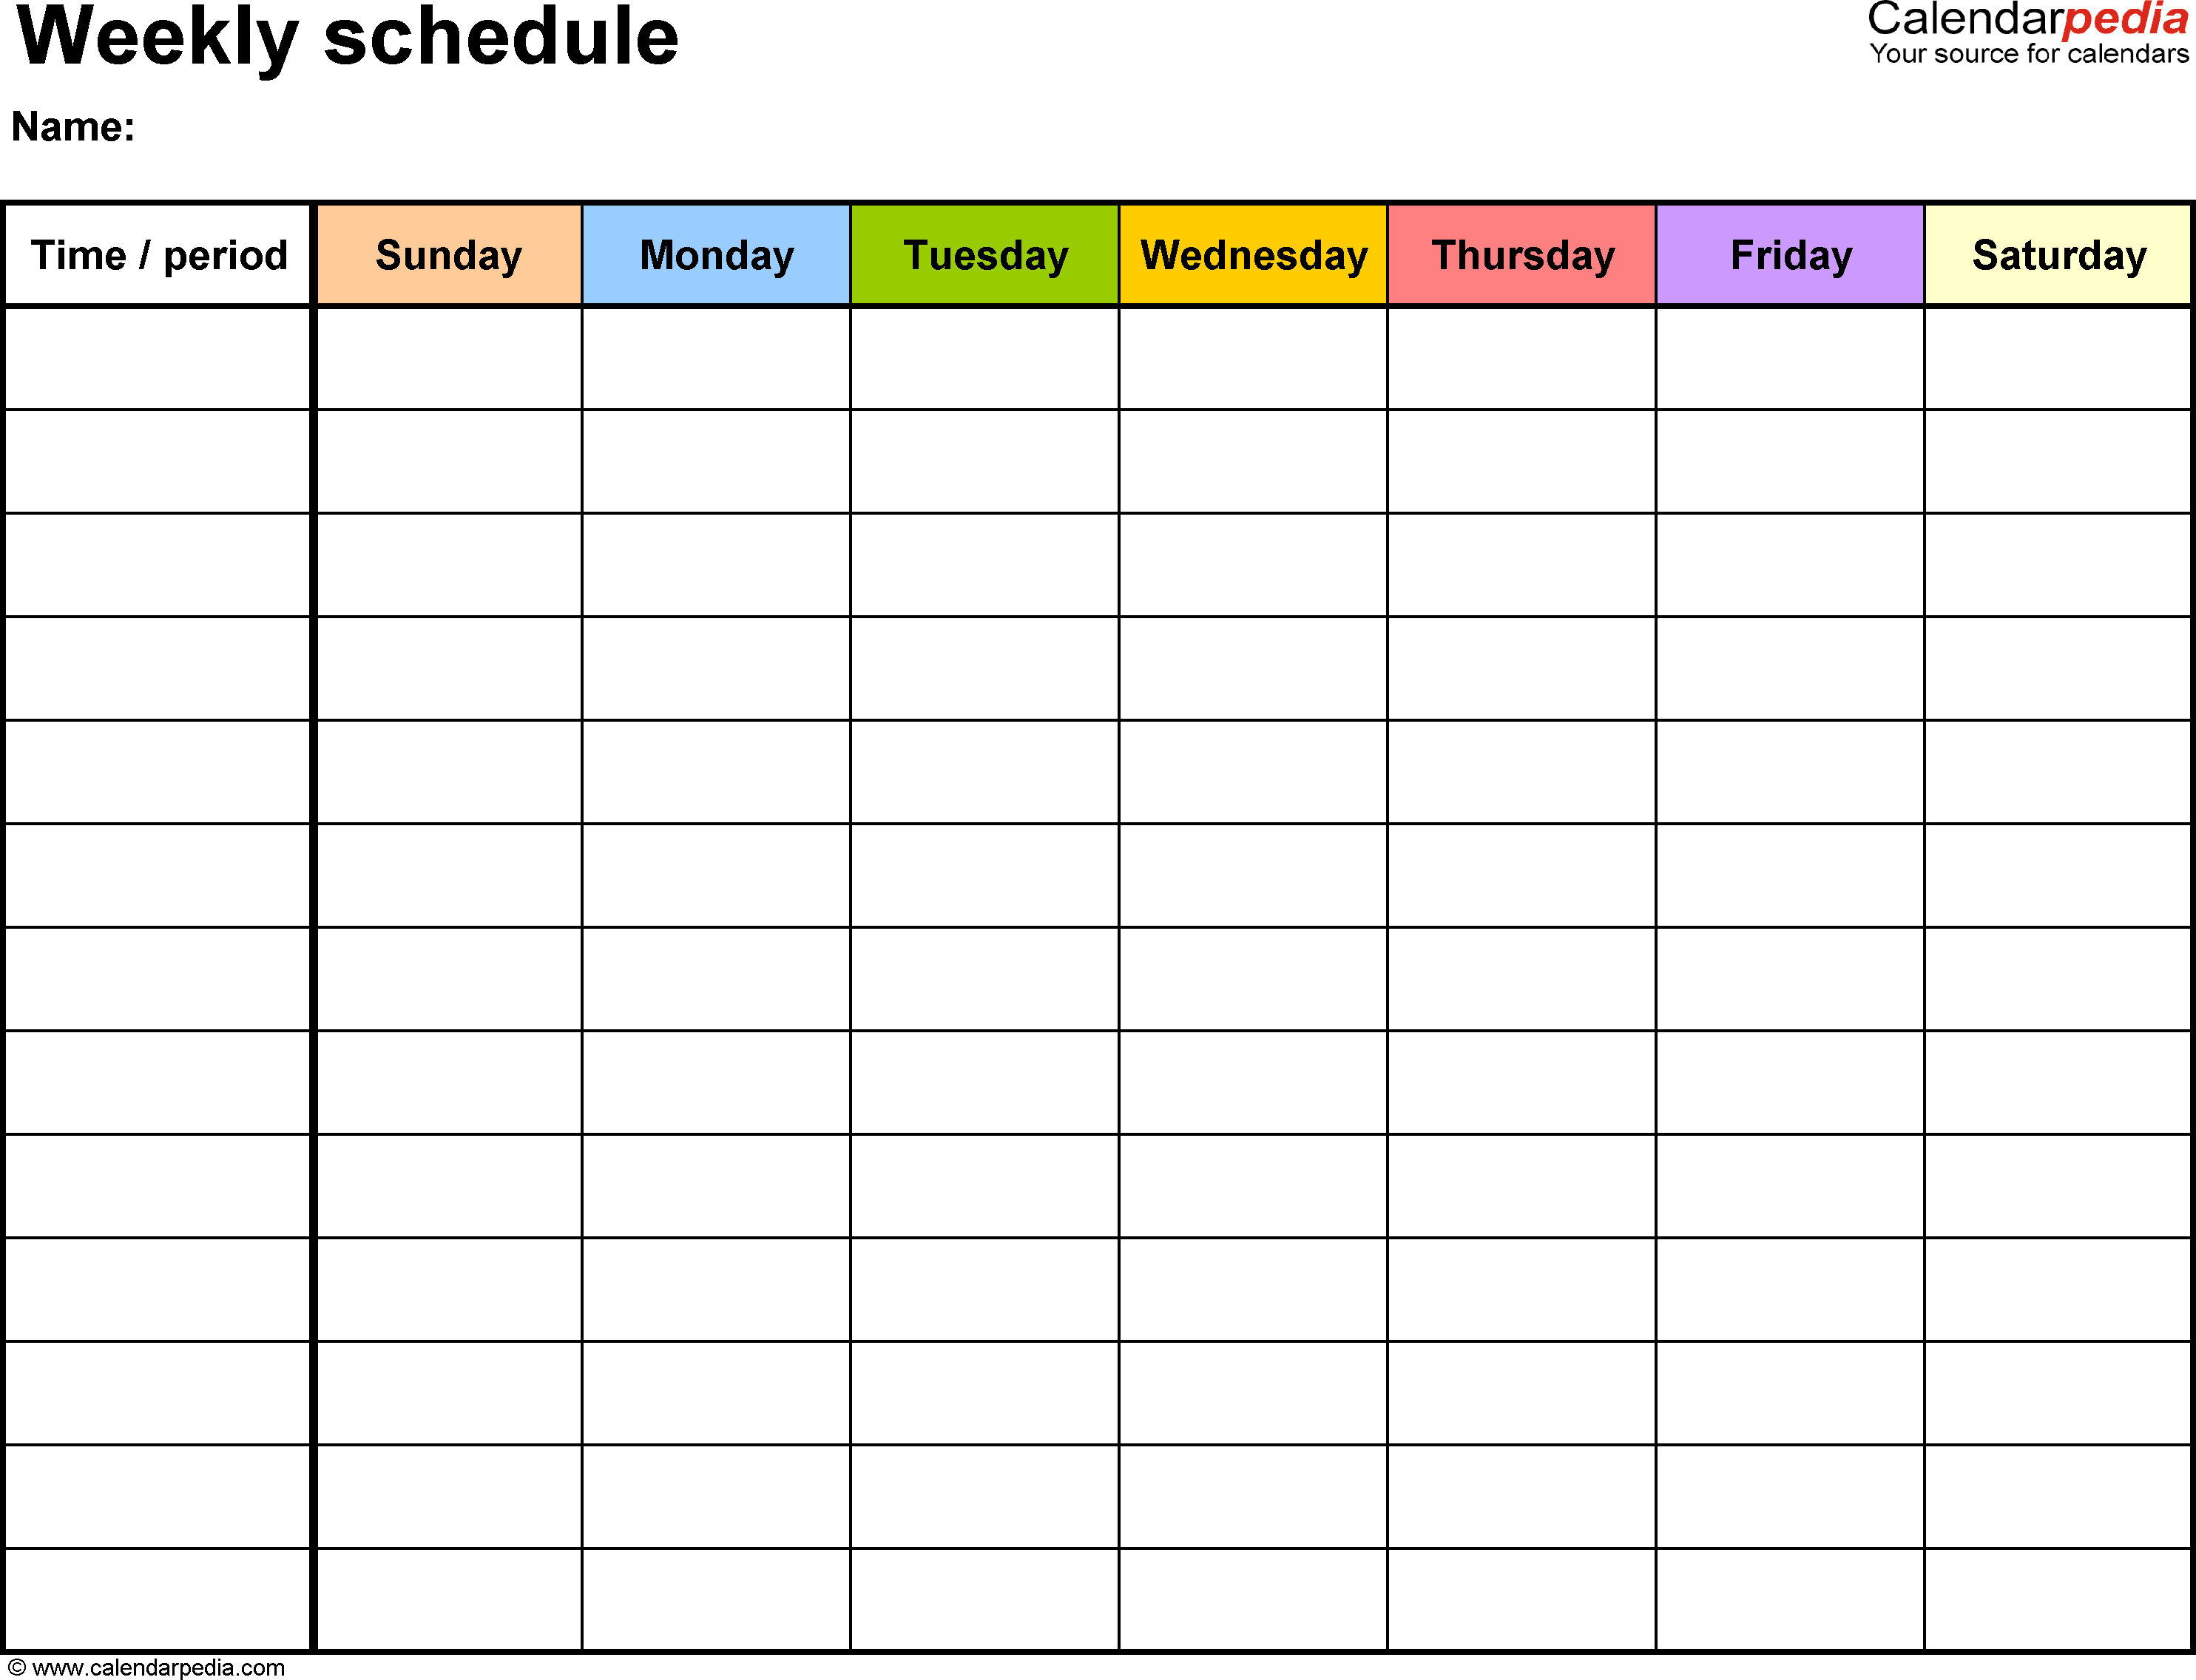 Free Weekly Schedule Templates For Word - 18 Templates inside 7 Day Weekly Planner Template Printable